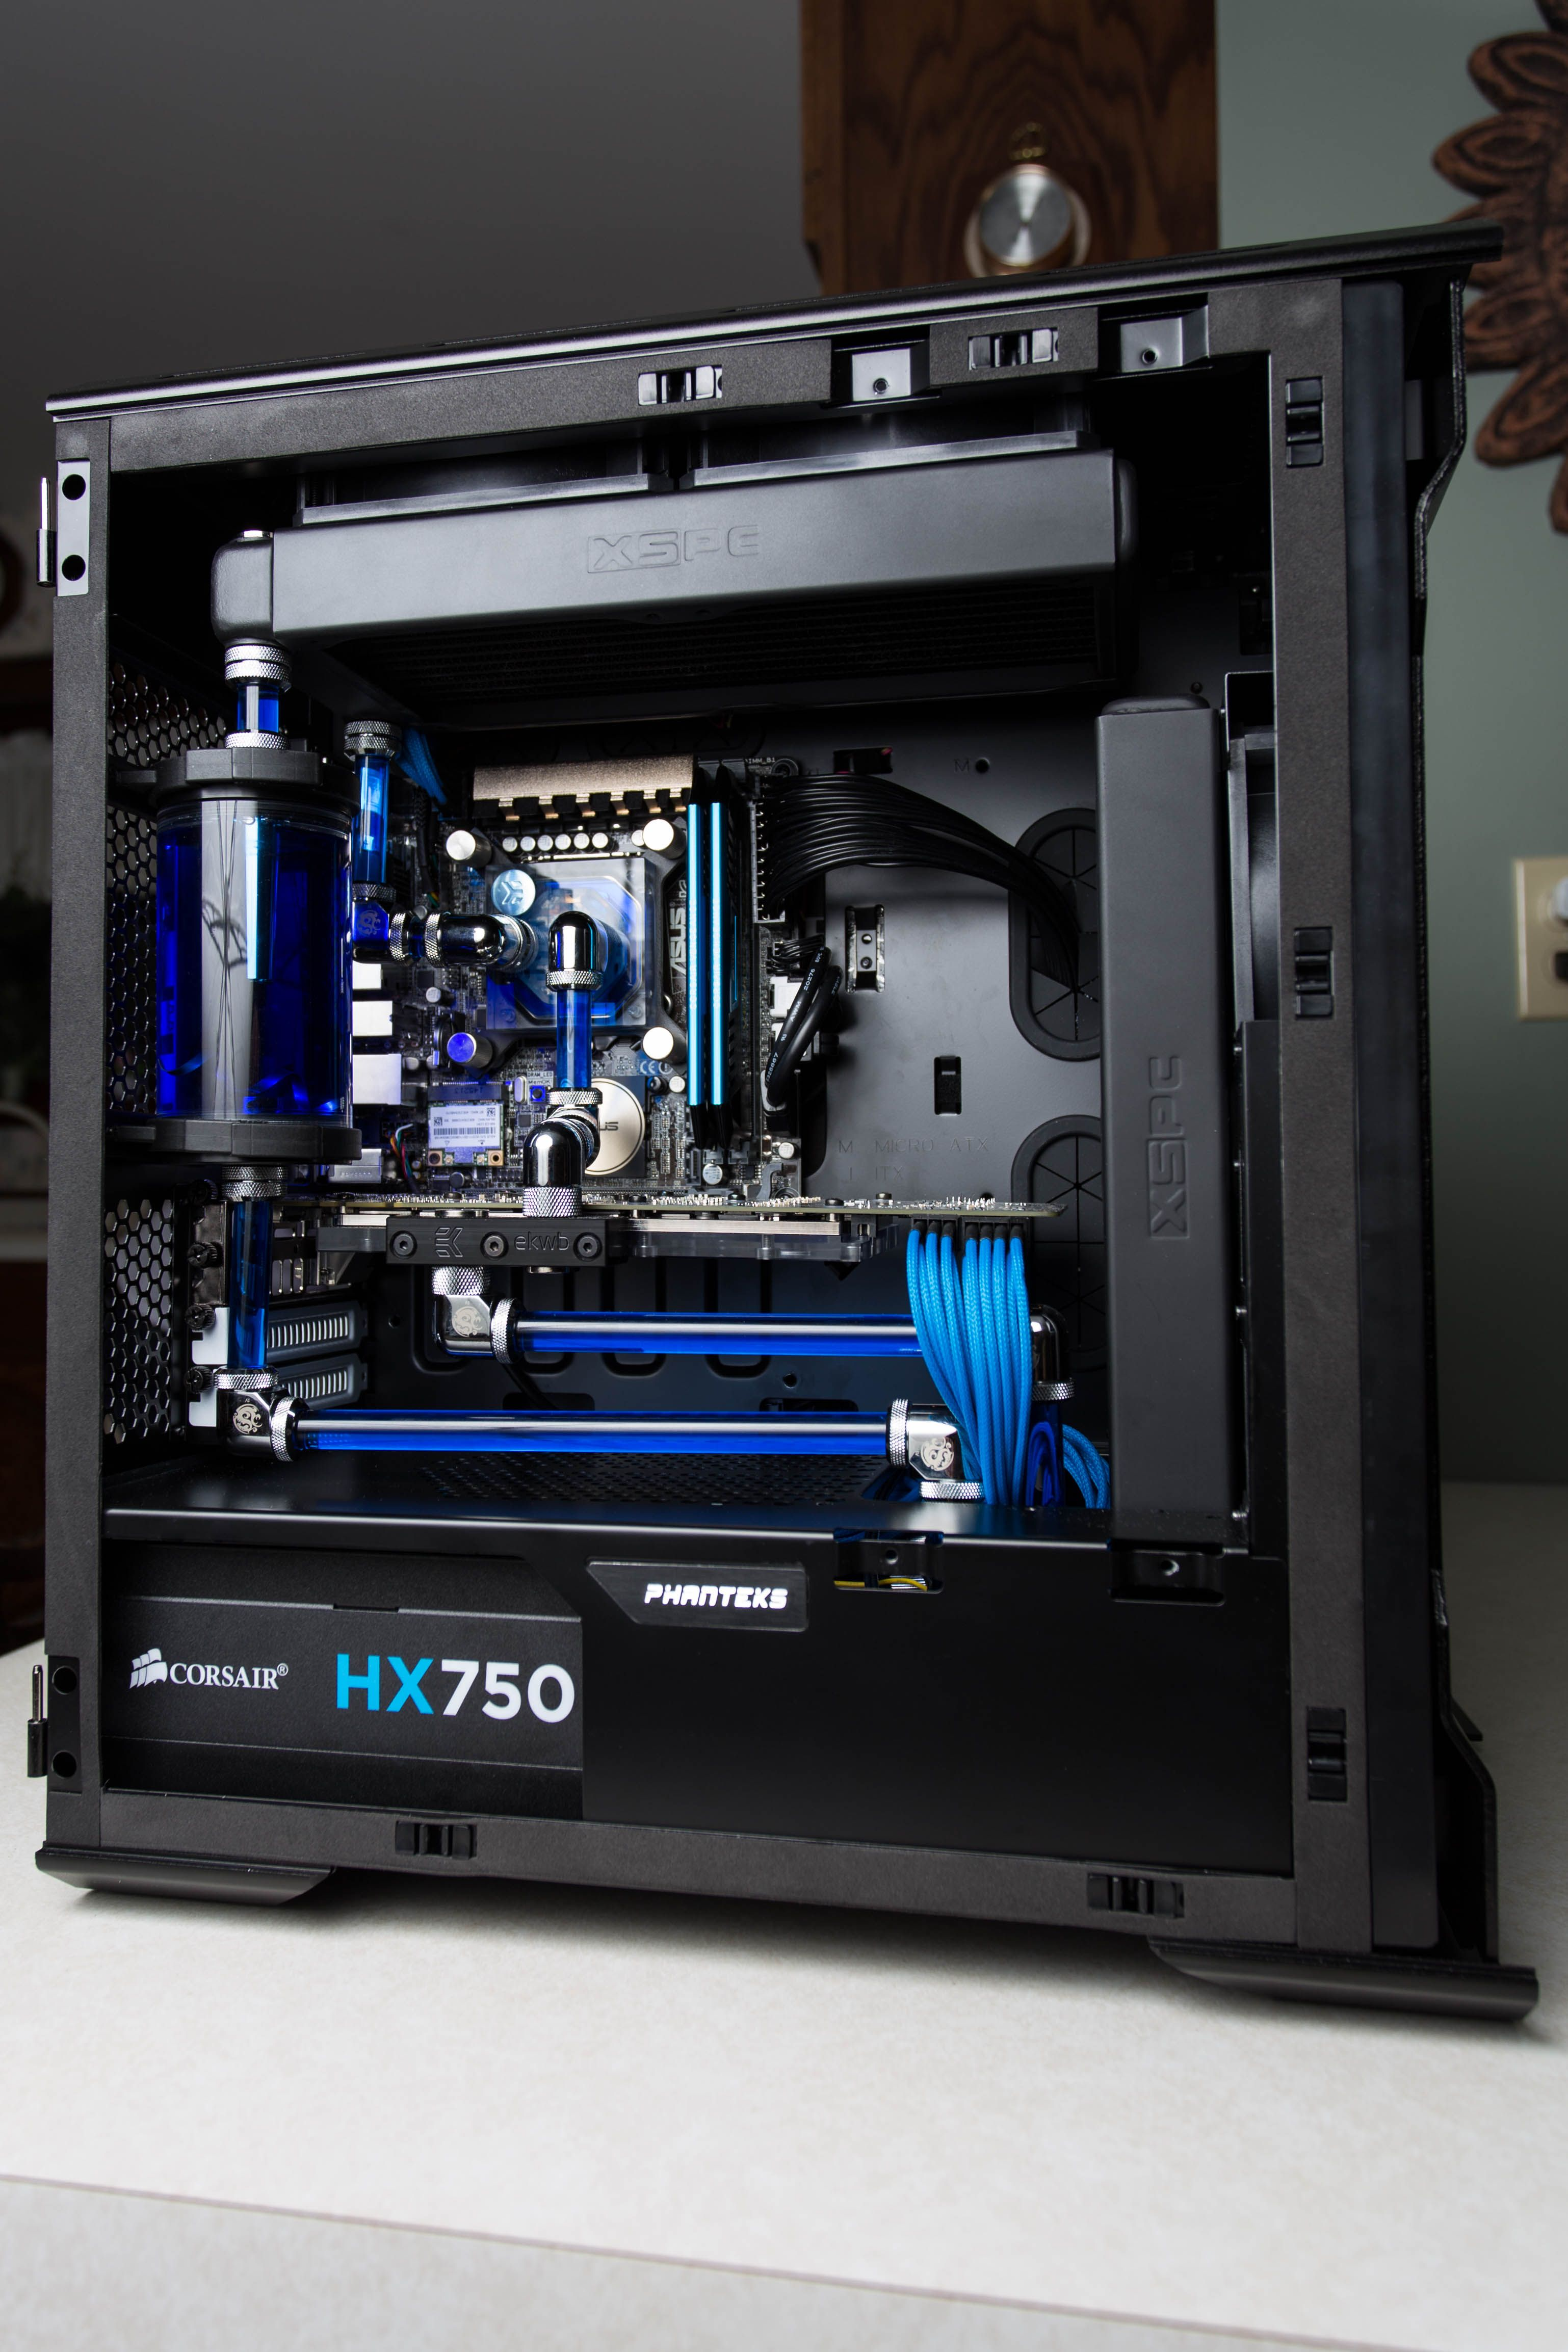 watercooled pc build 2015 water cooled pc 39 s pinterest water pc and gaming. Black Bedroom Furniture Sets. Home Design Ideas